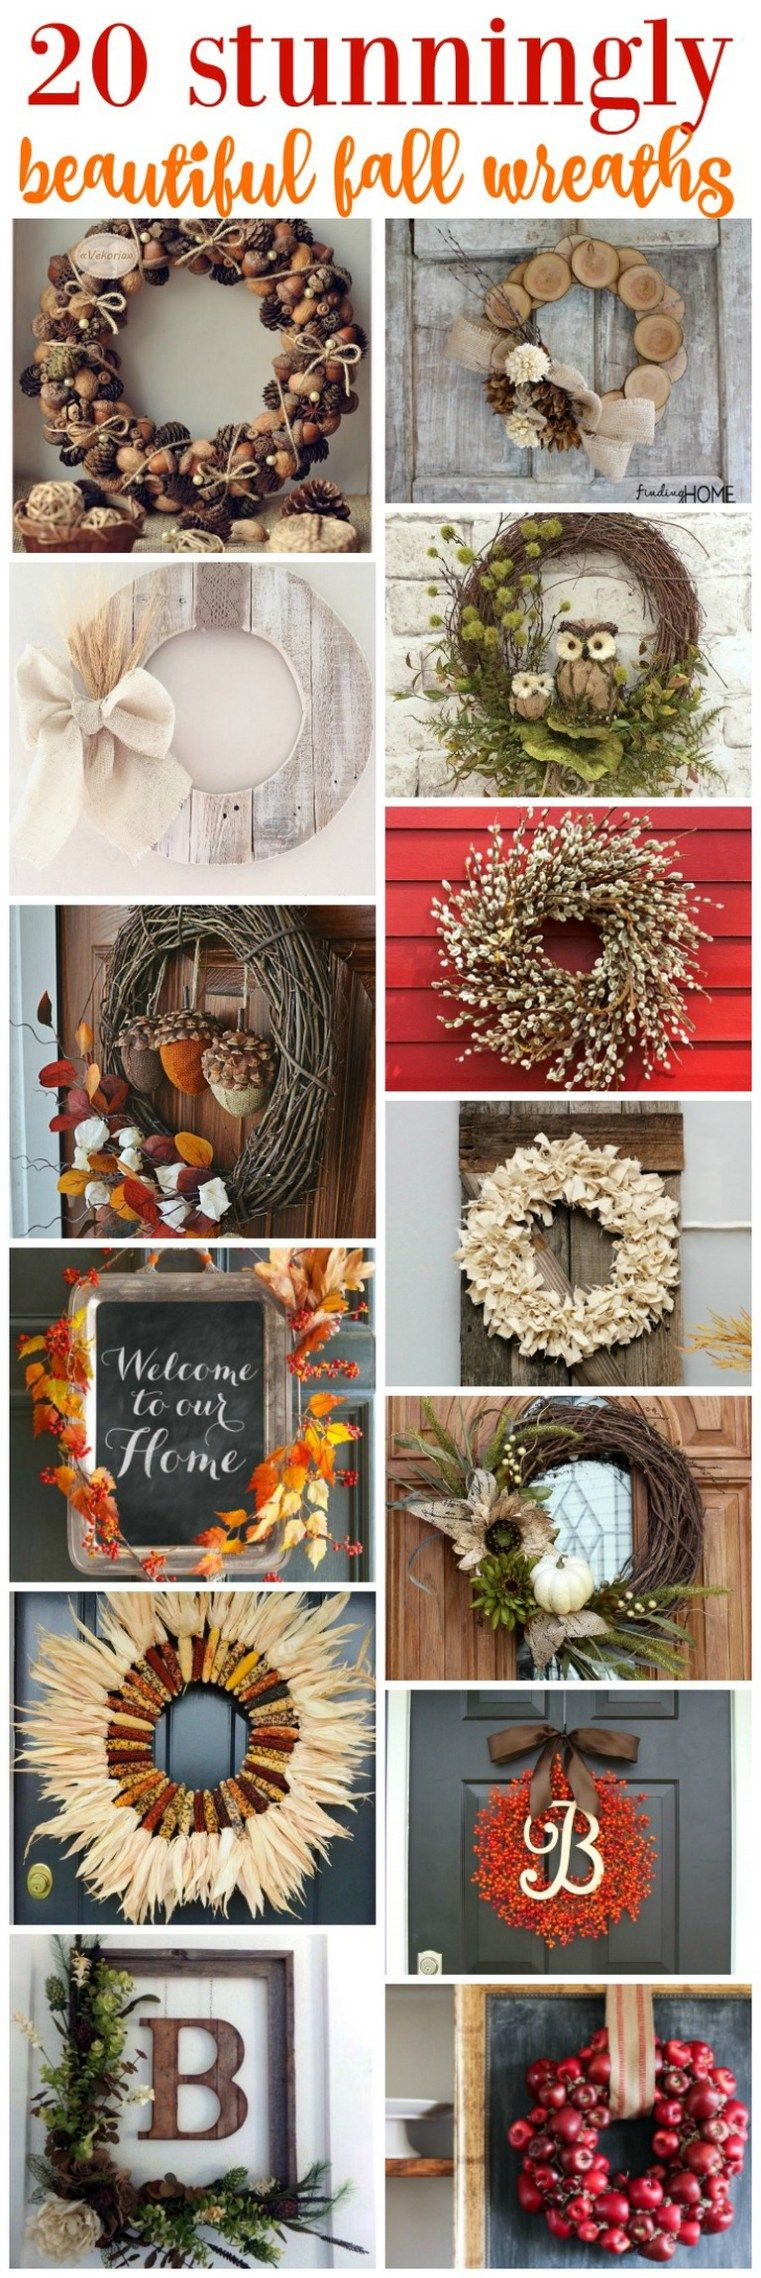 27 fall decor ideas